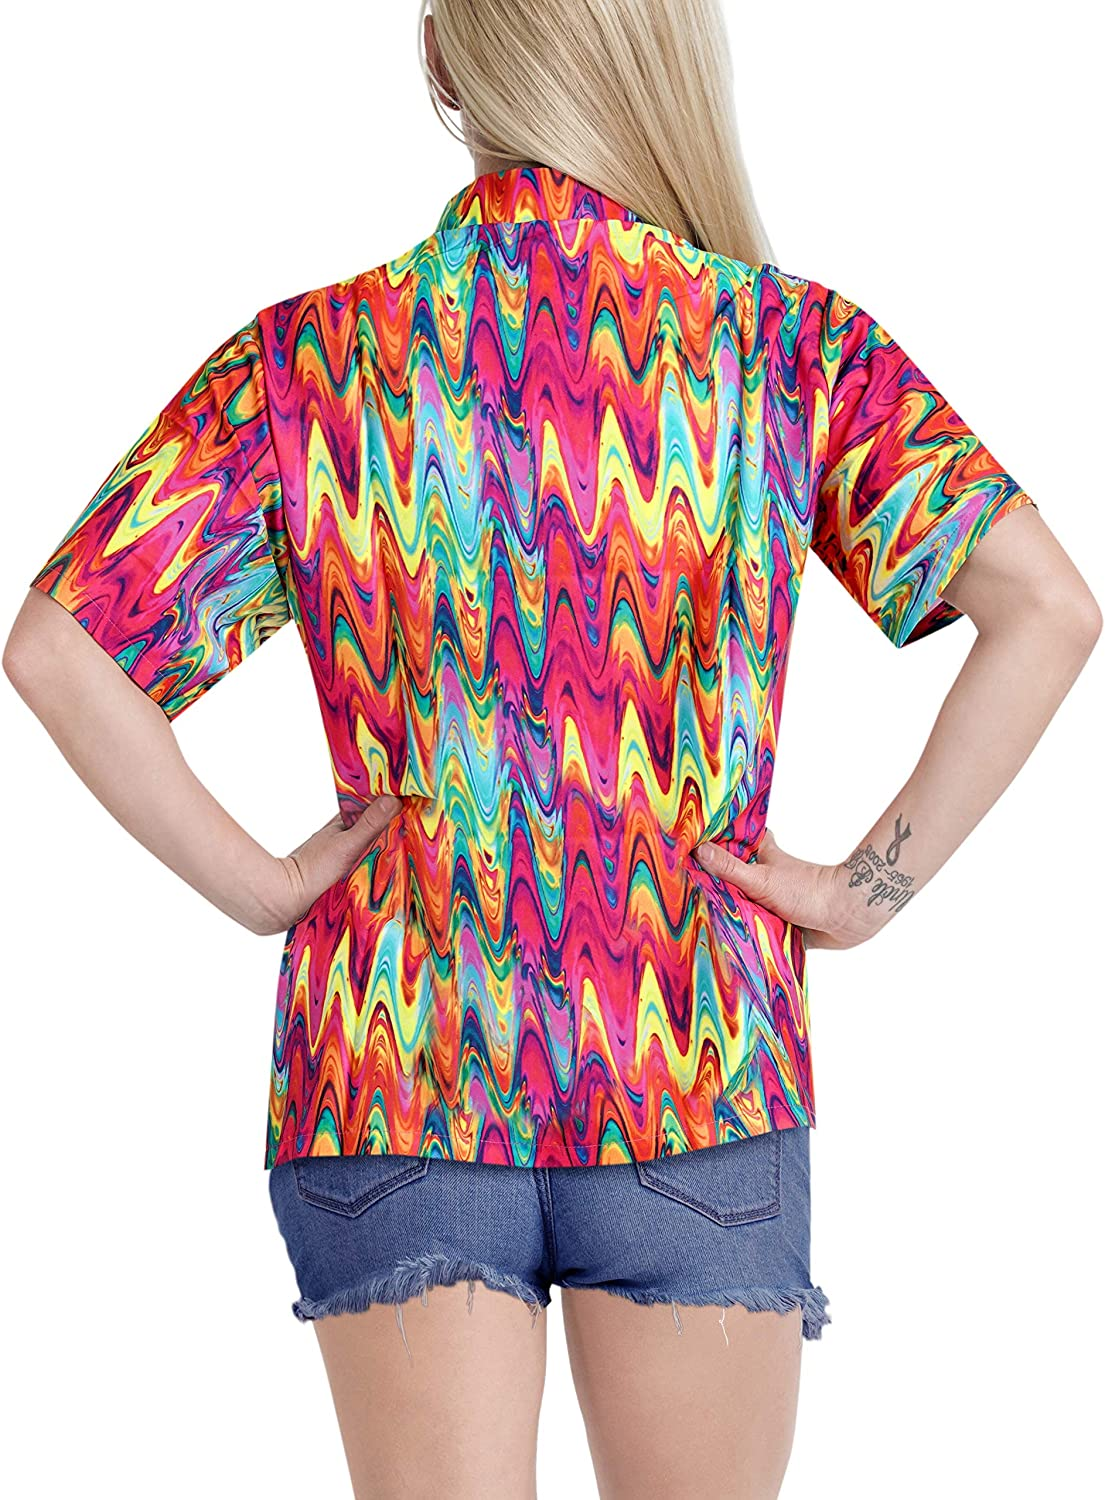 LA LEELA Womens Hawaiian Blouse Shirt Short Sleeves Nightwear Shirt Embroidered